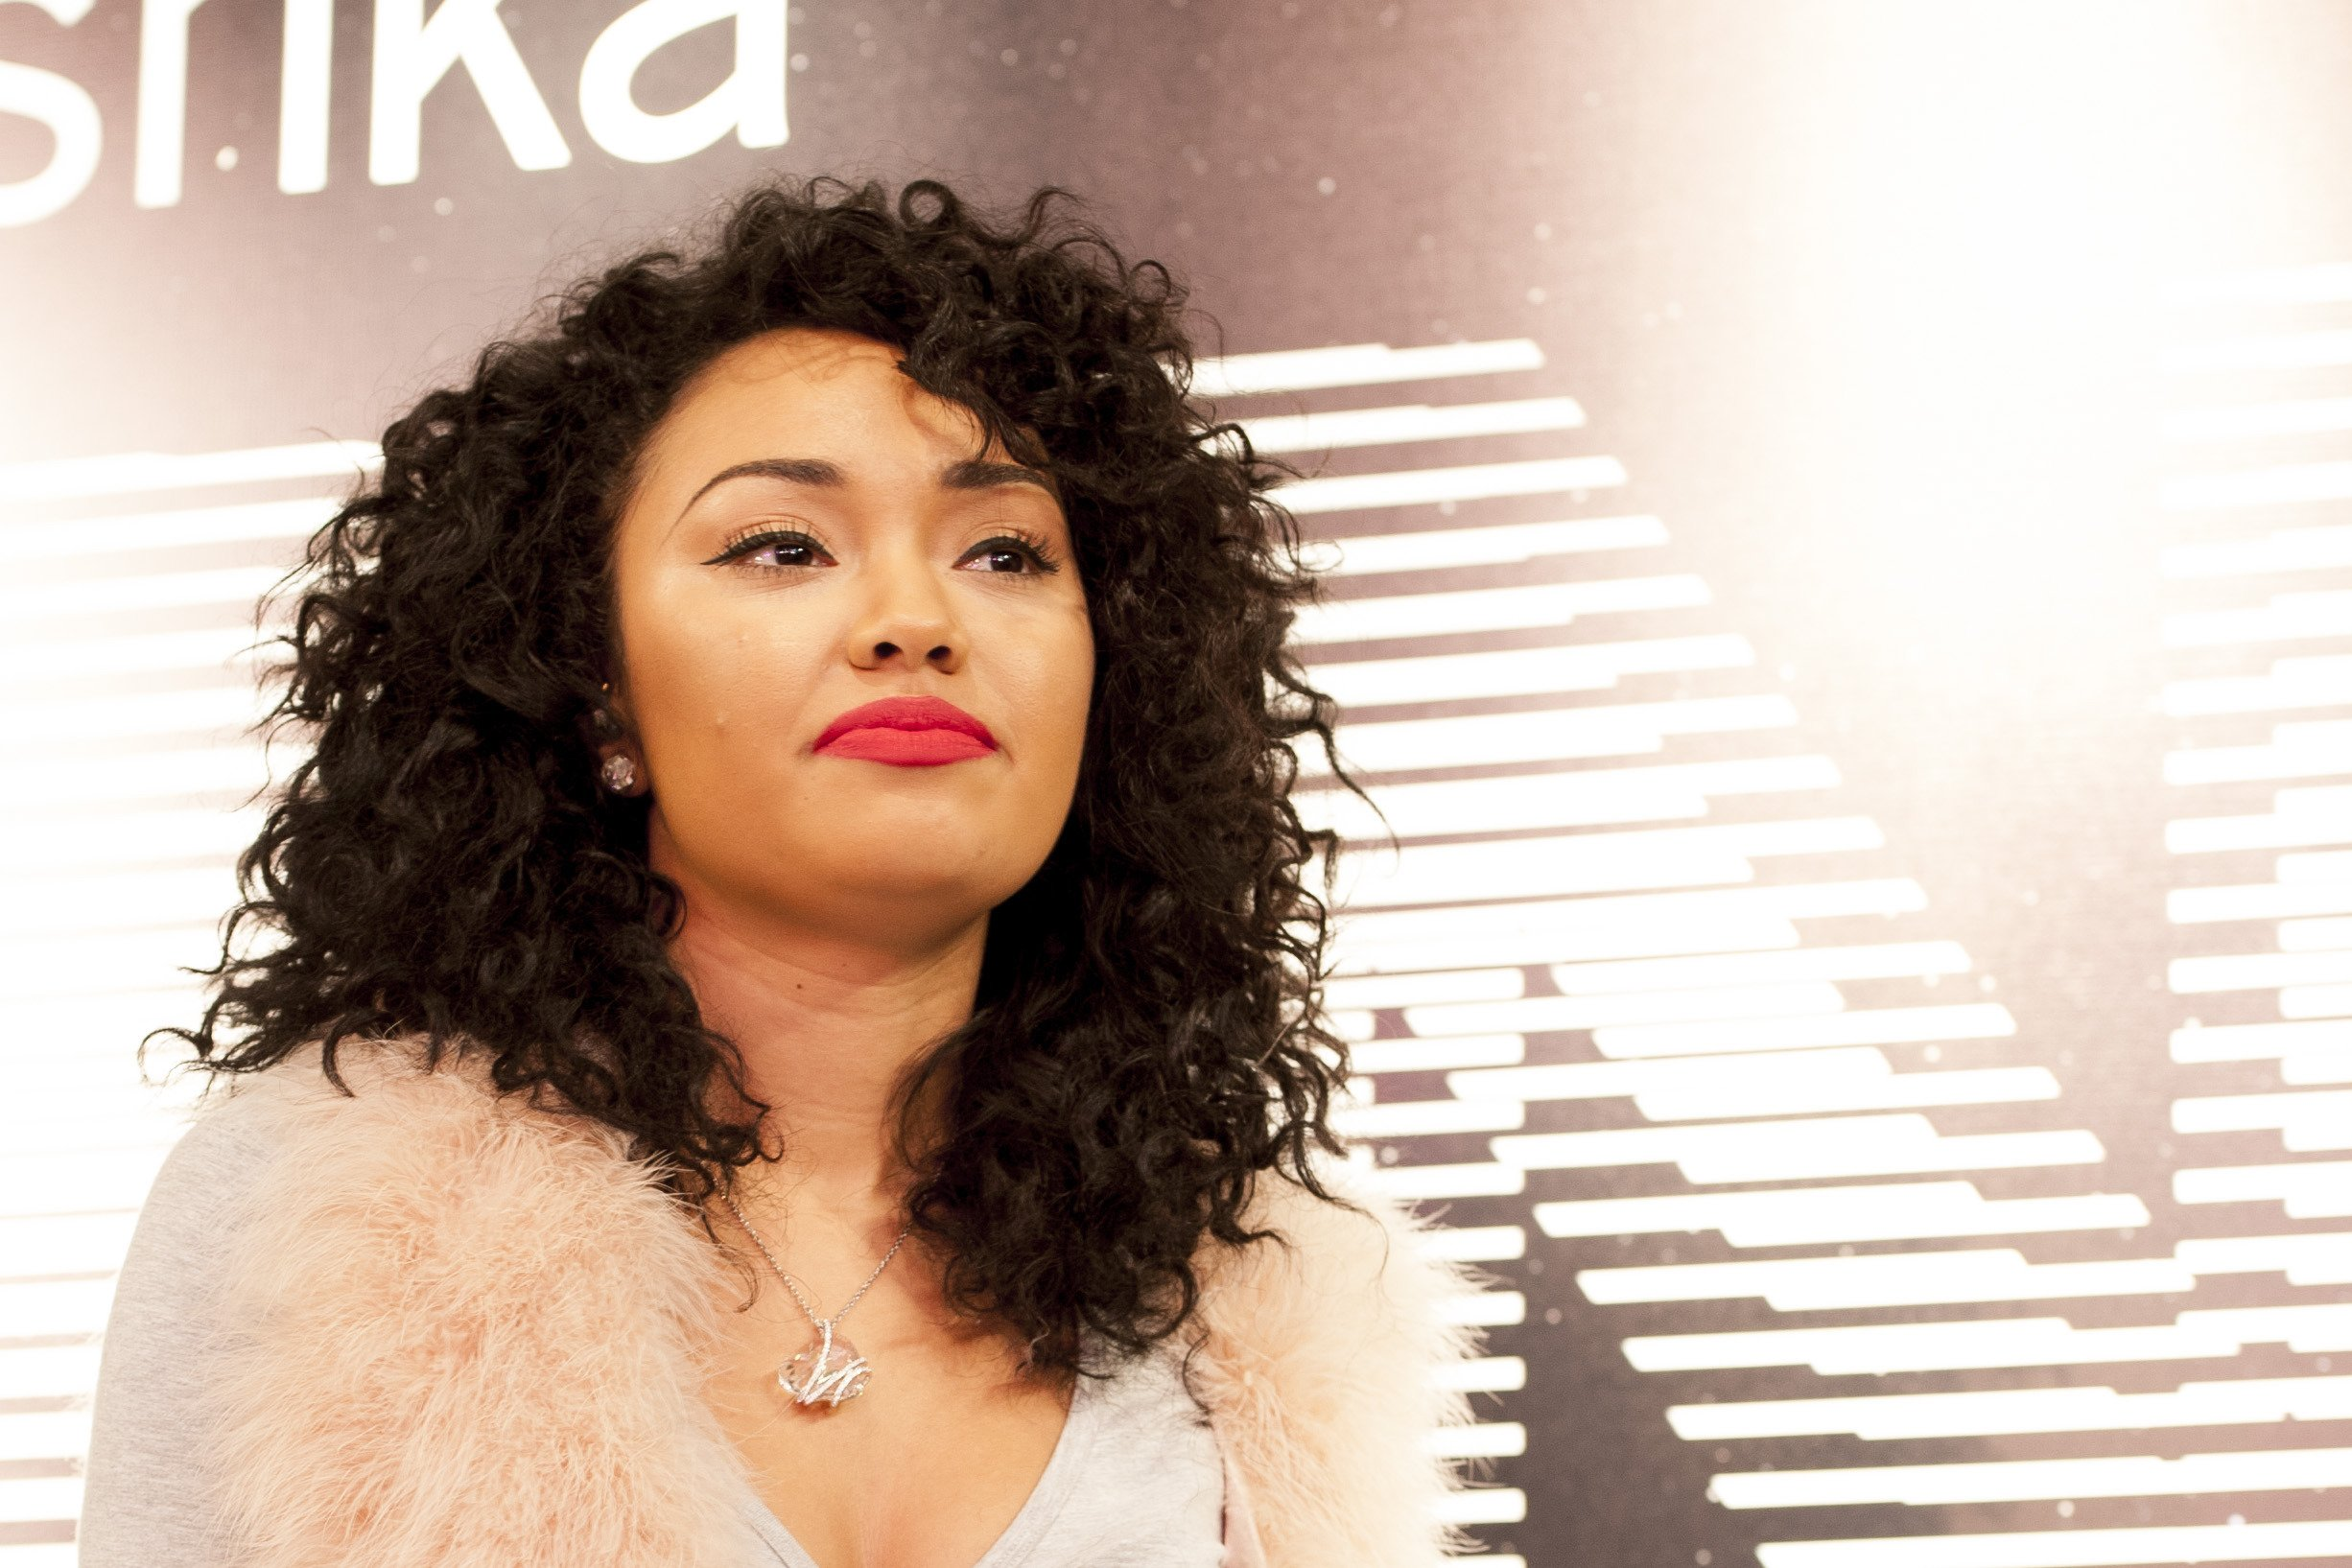 Leigh Anne Pinnock from Little Mix at the Bershka Flagship store launch party, on November 14, 2012 in Oxford Street, London   Photo: Shutterstock